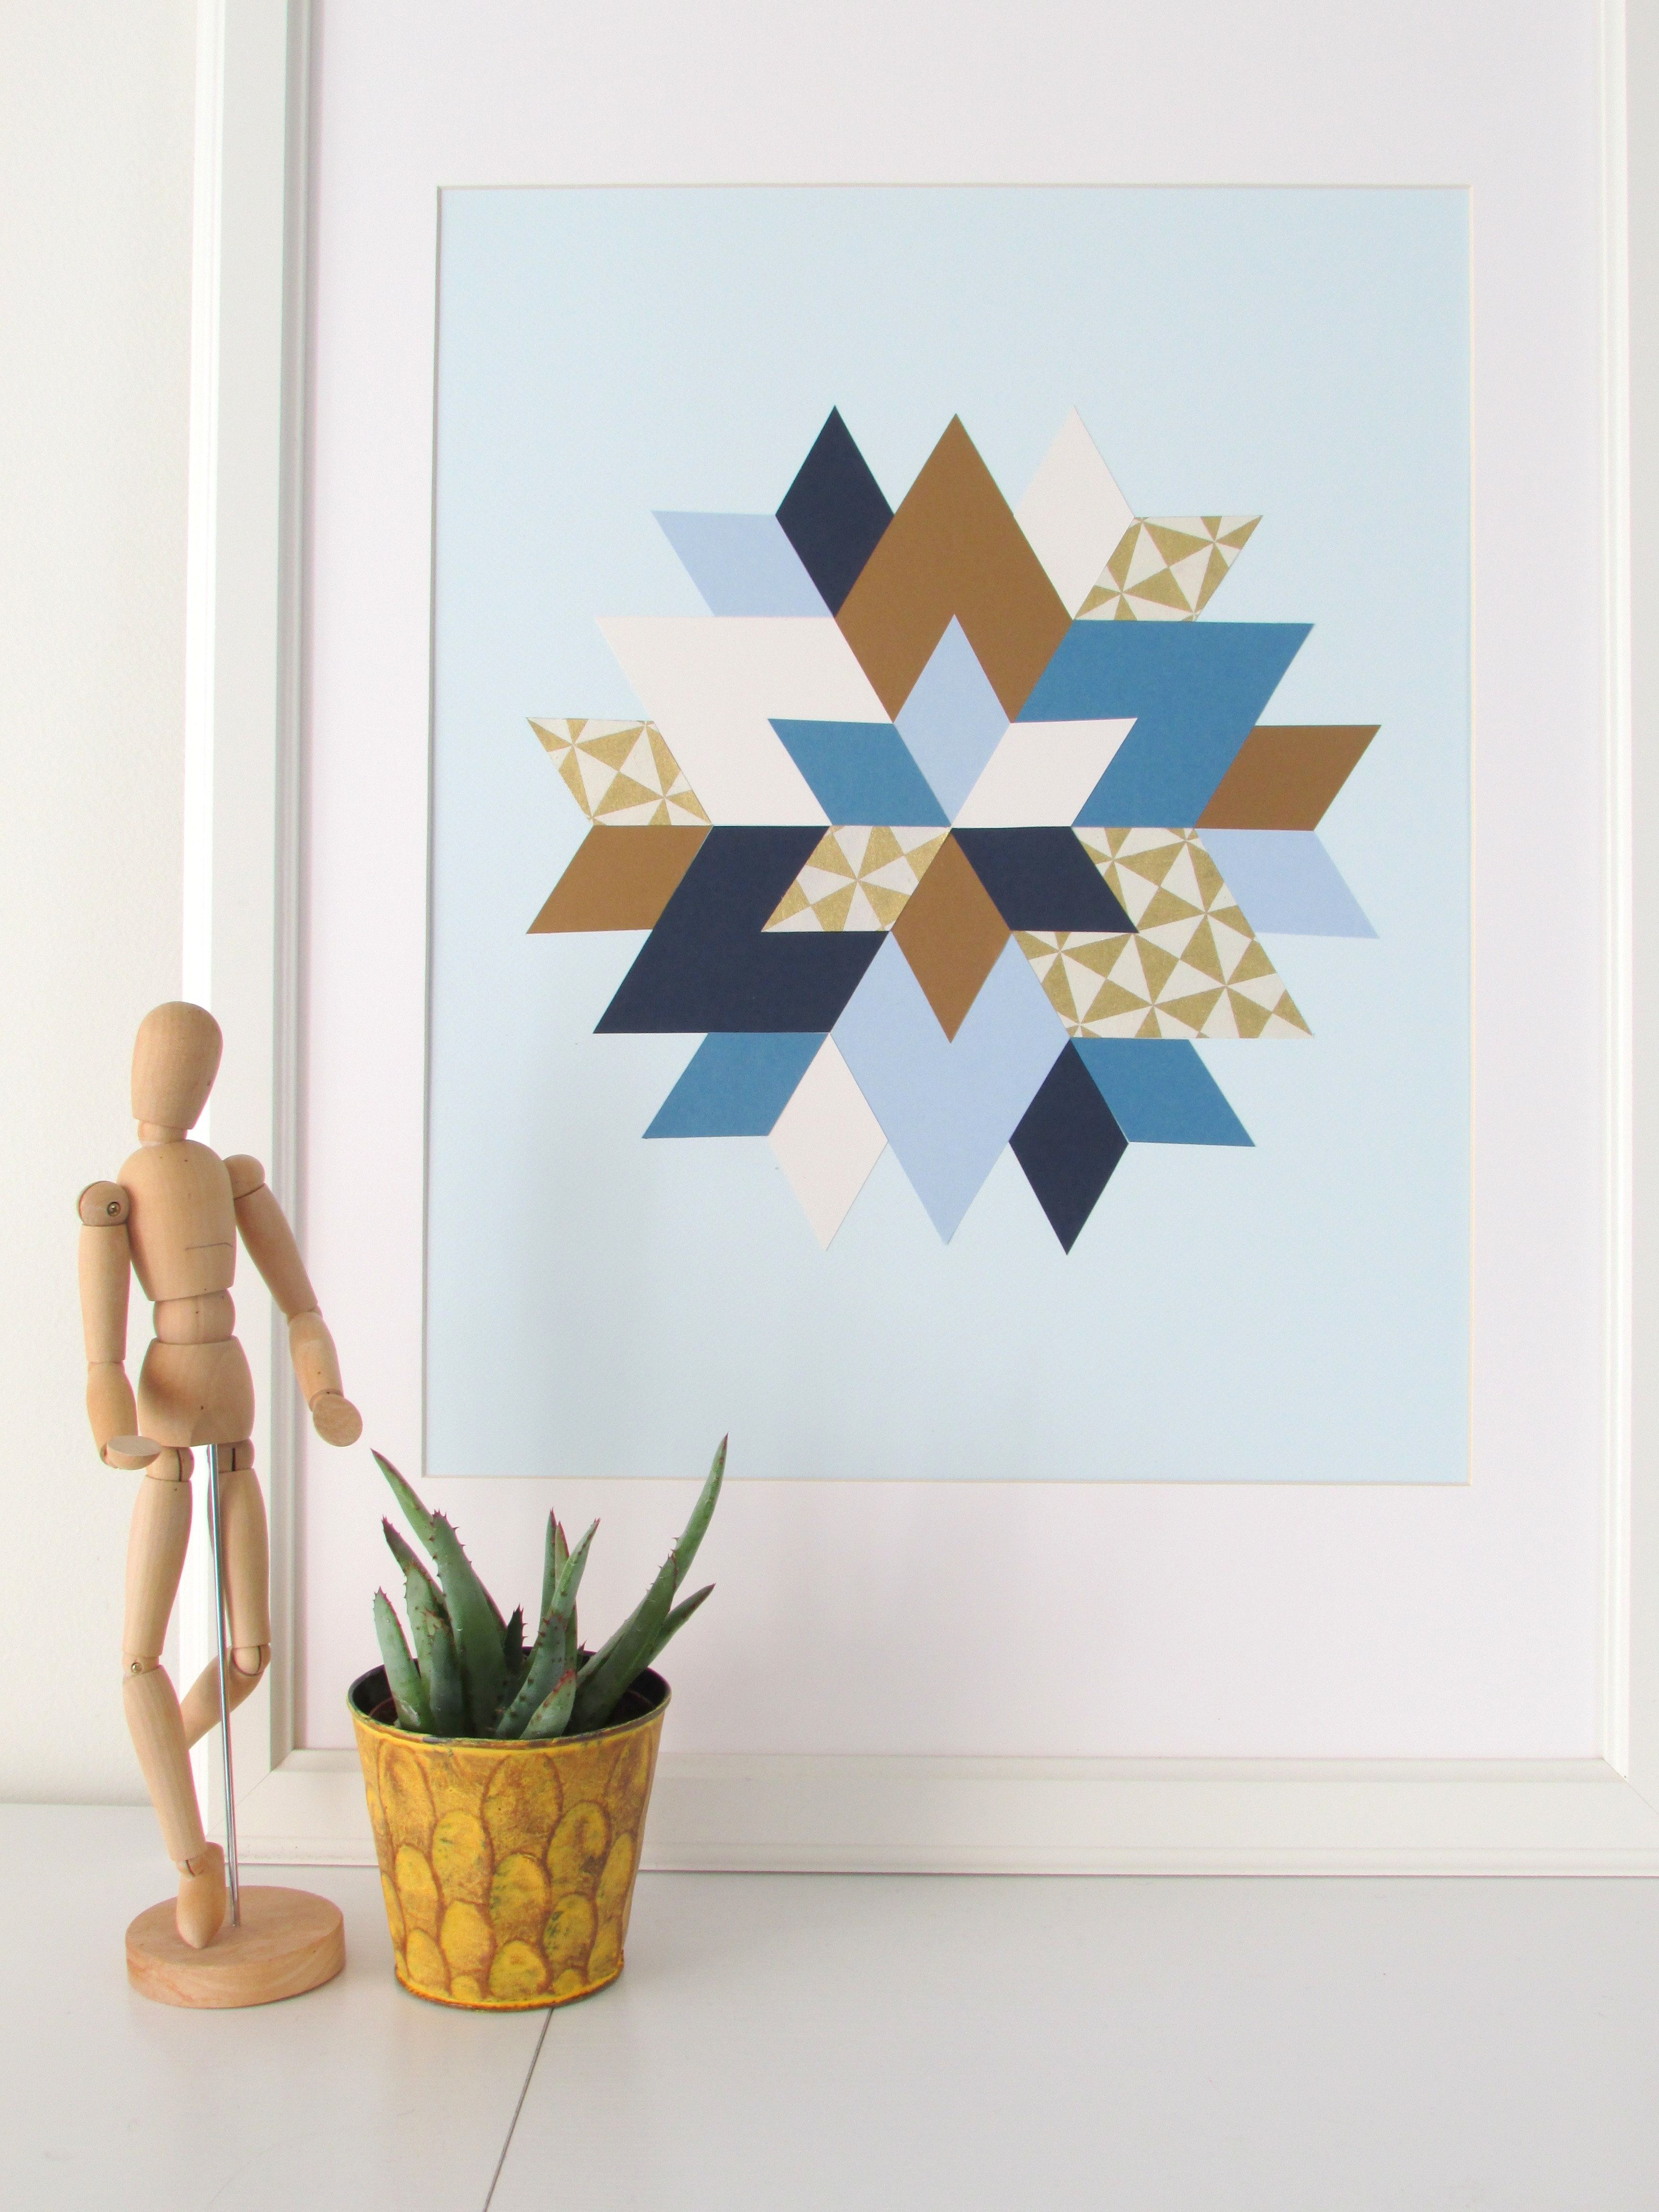 Kaleidoscope Wall Art Pertaining To Popular Kaleidoscope Inspired Paper Art – Francois Et Moi (View 8 of 15)